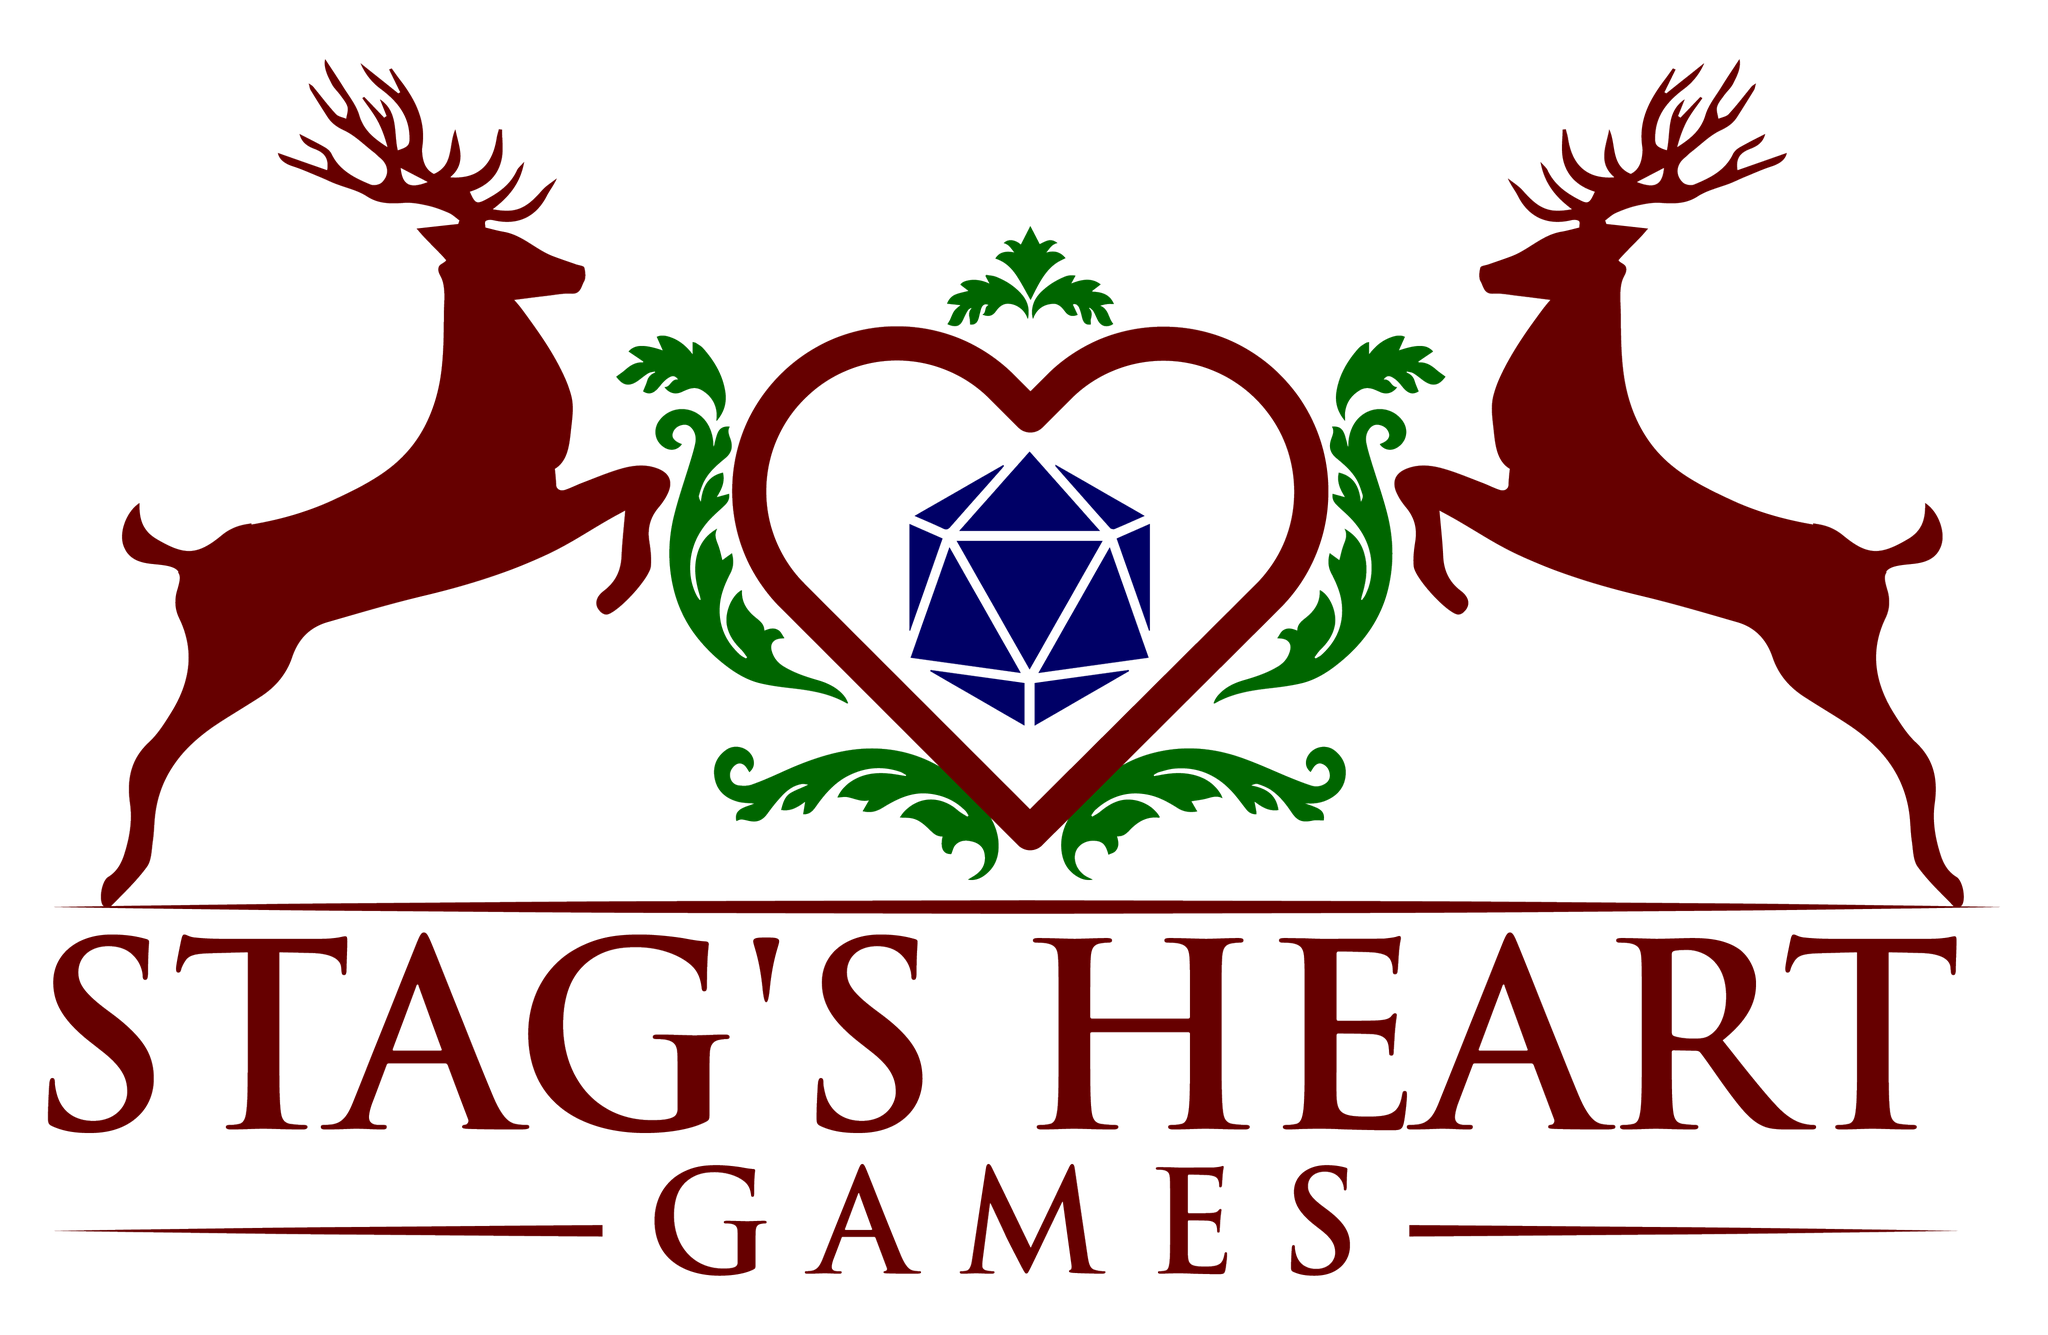 Stag's Heart Games